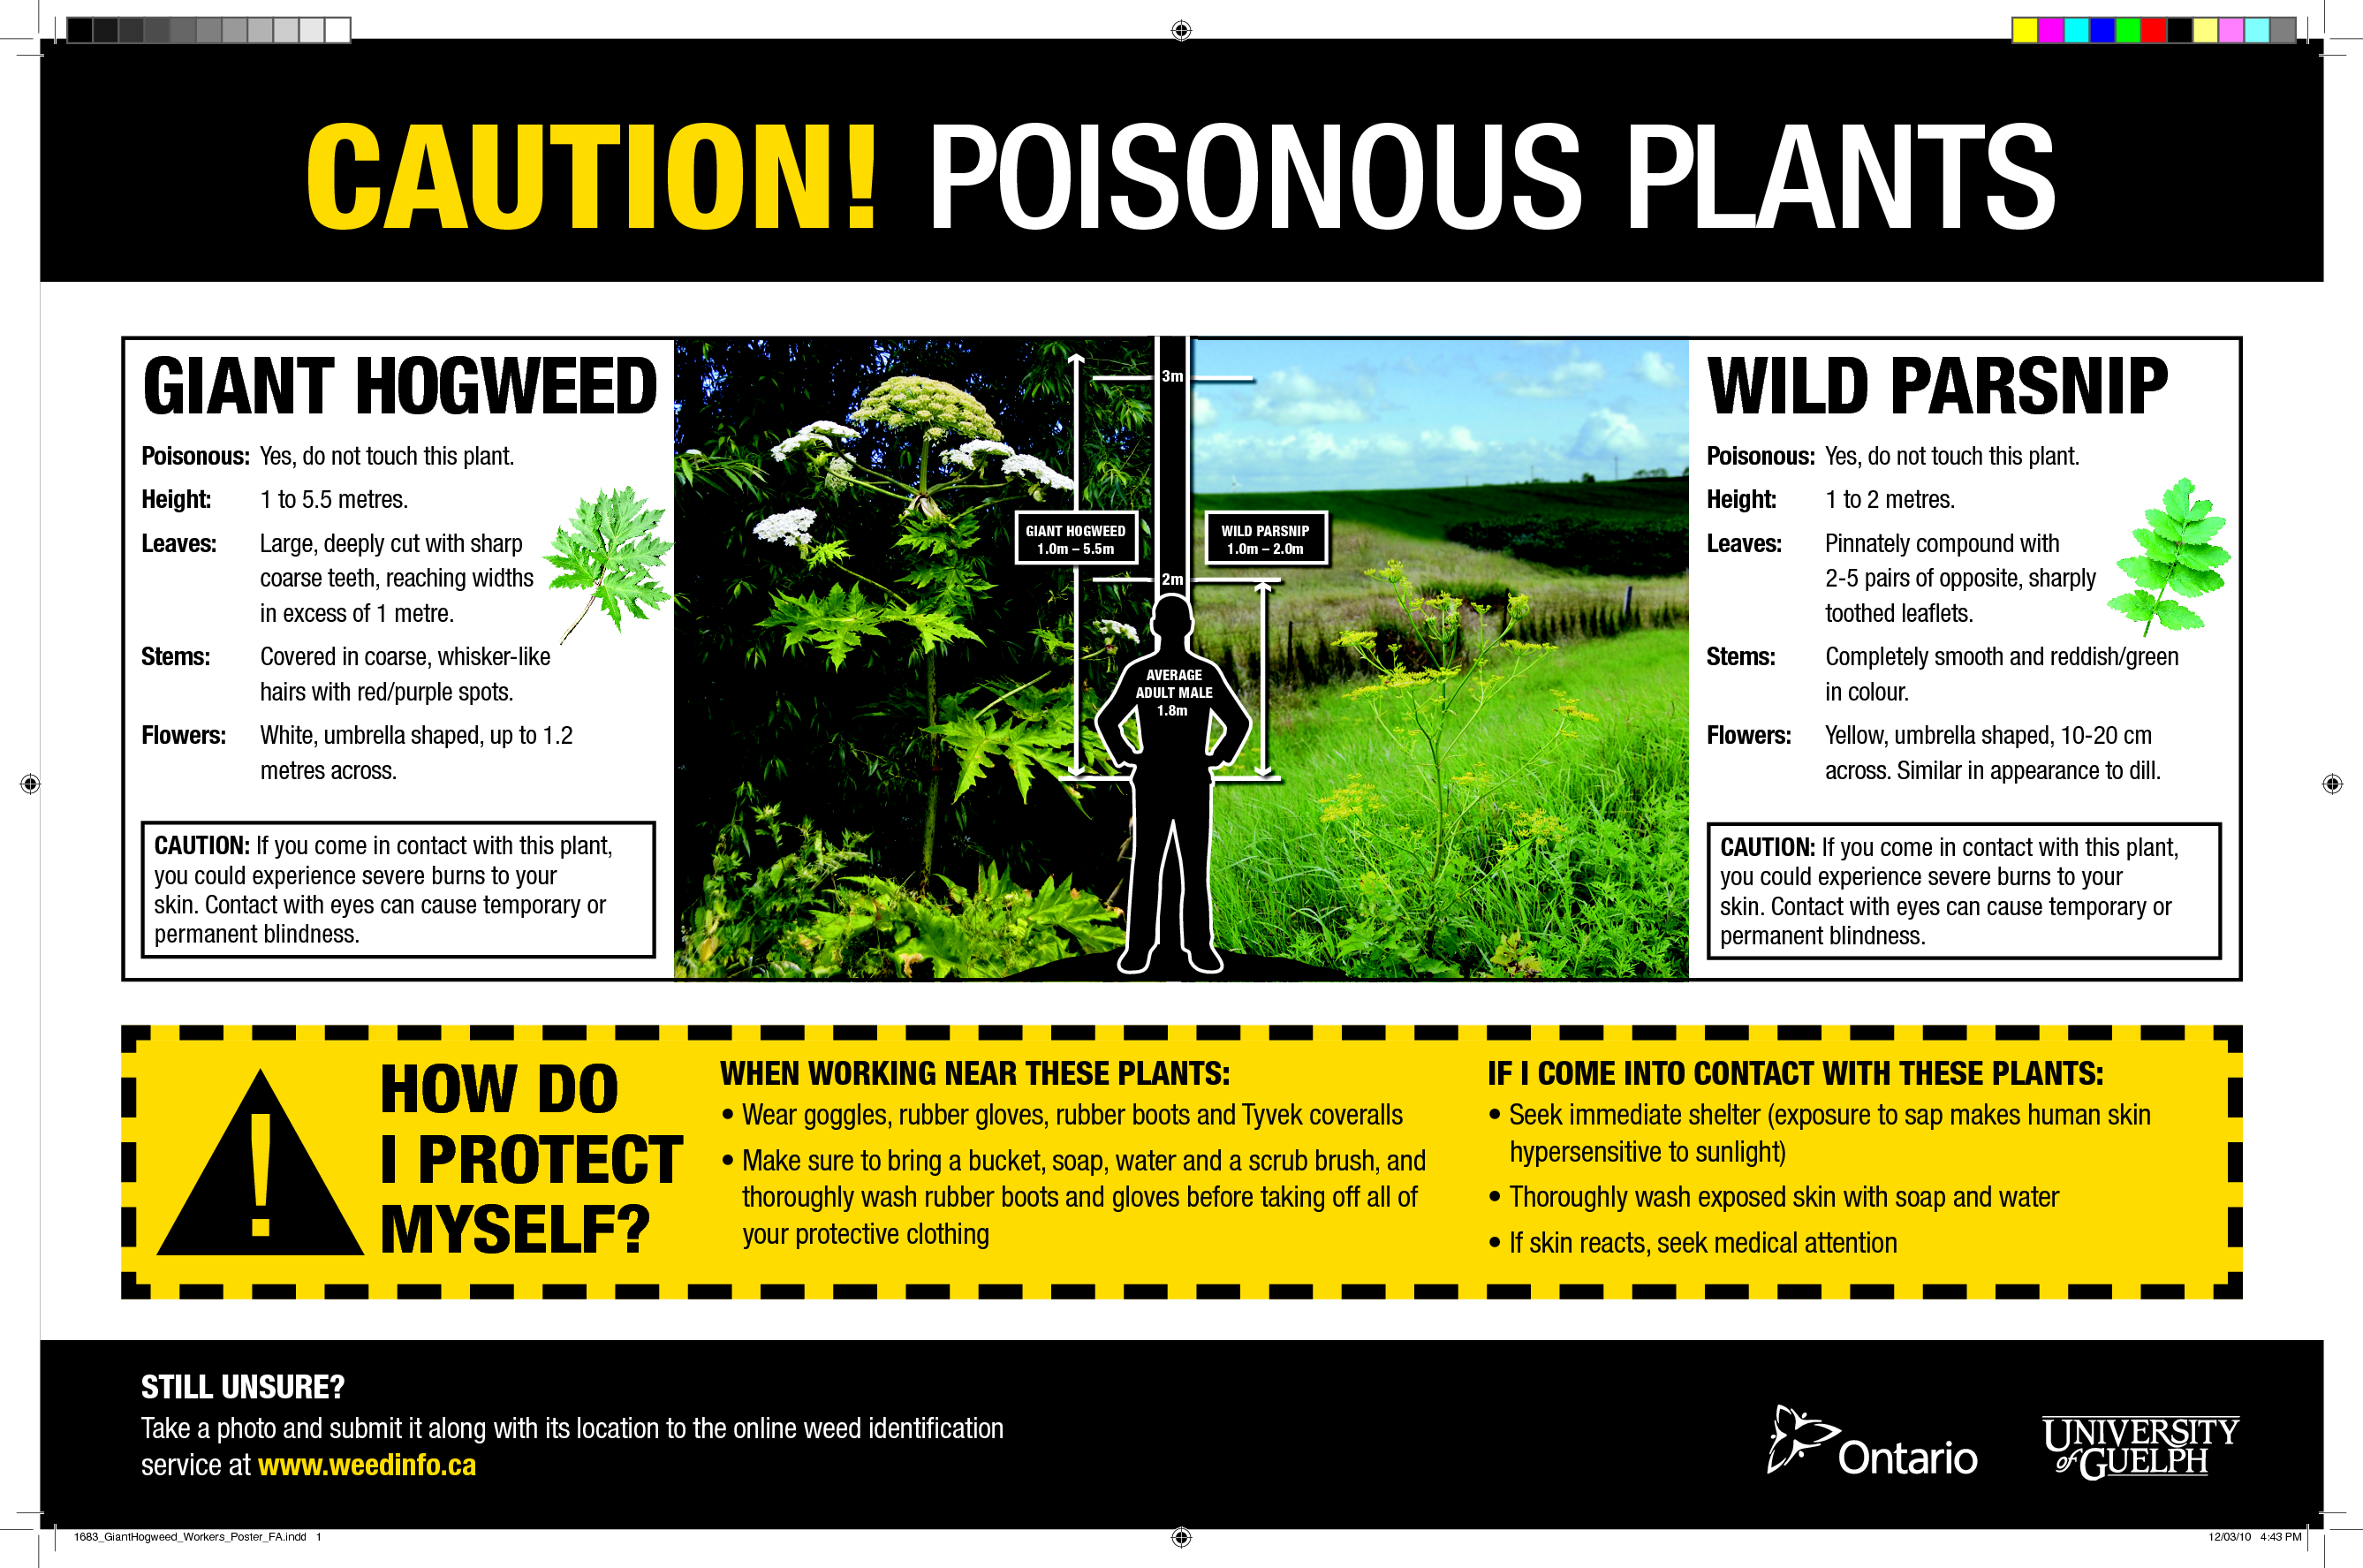 Poison+Parsnip+Burns | GIANT HOGWEED WILD PARSNIP